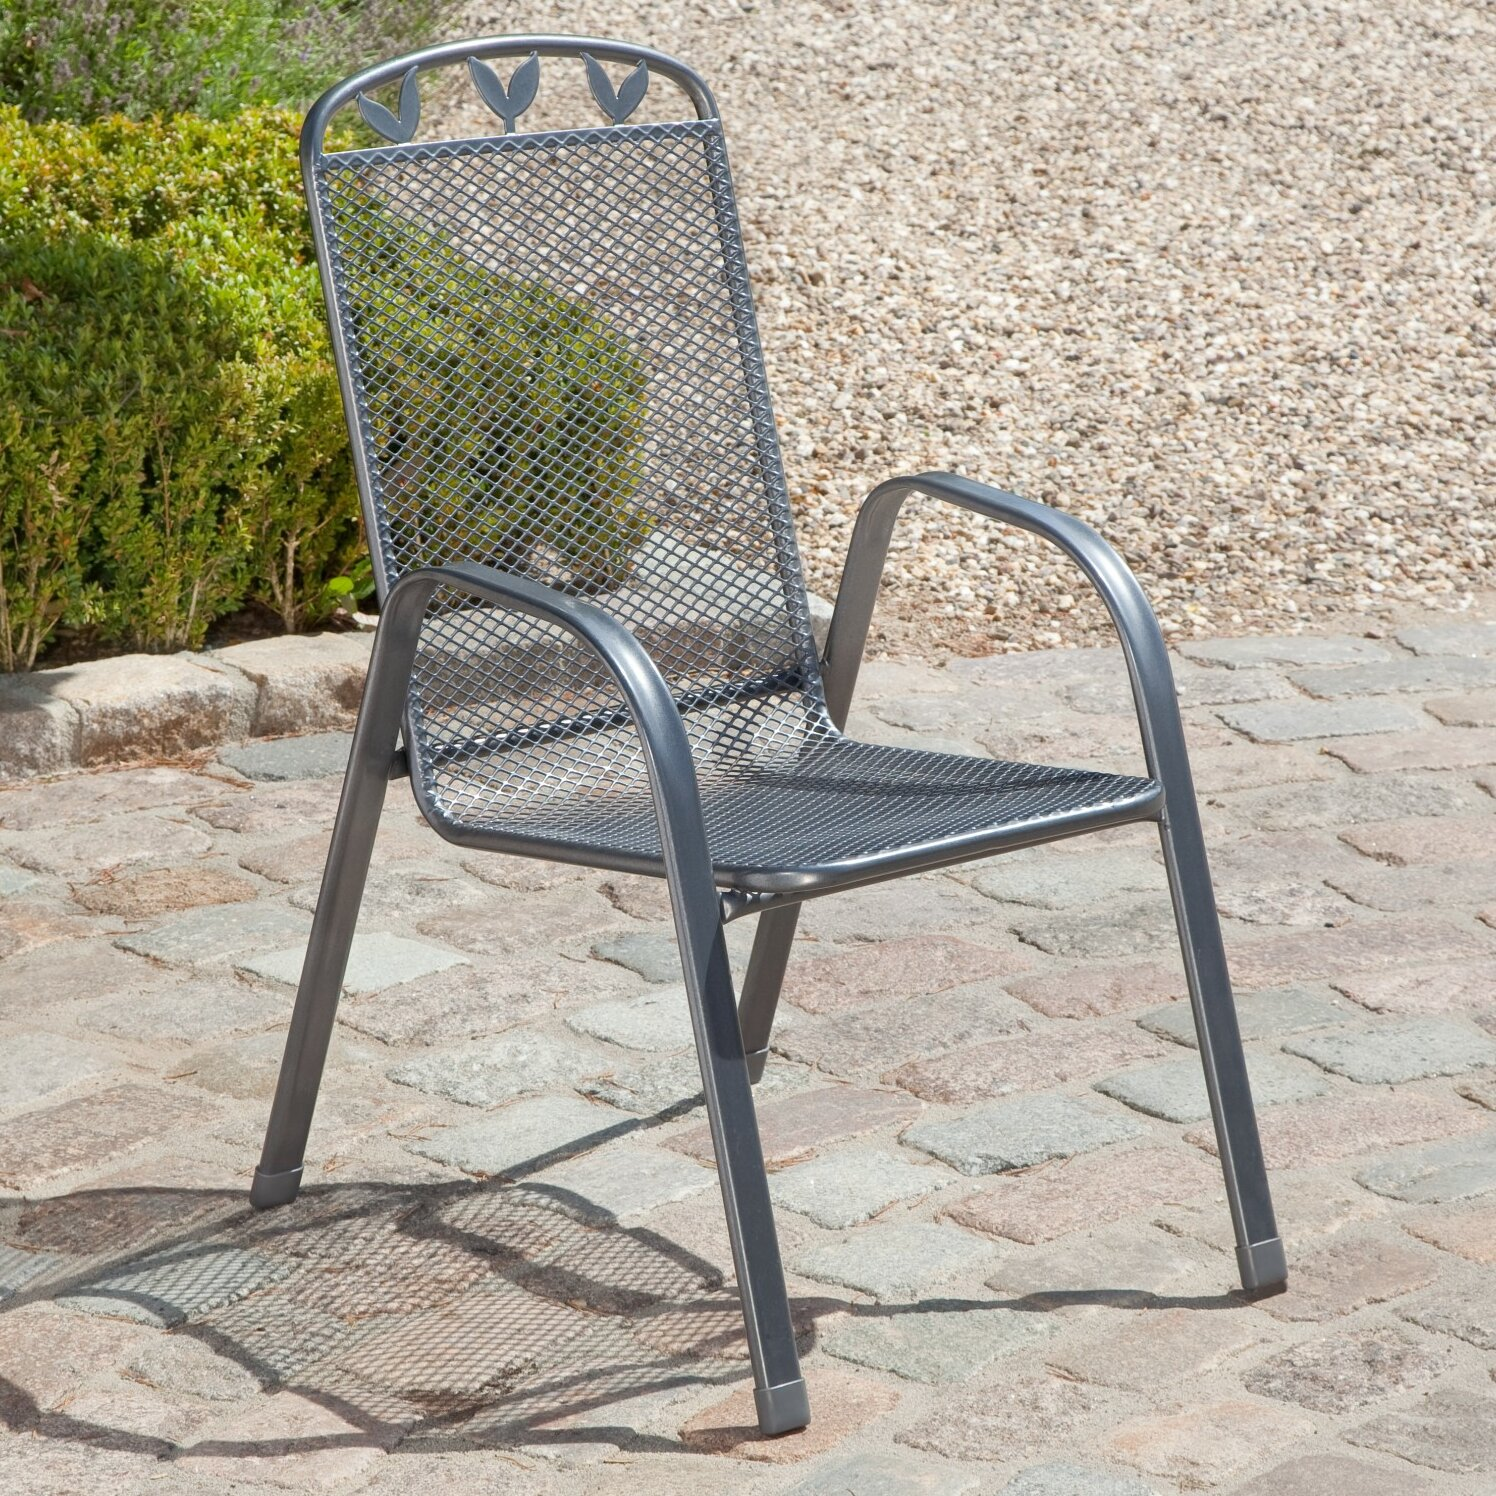 Greemotionuk 5 tlg essgruppe toulouse Meuble jardin metal